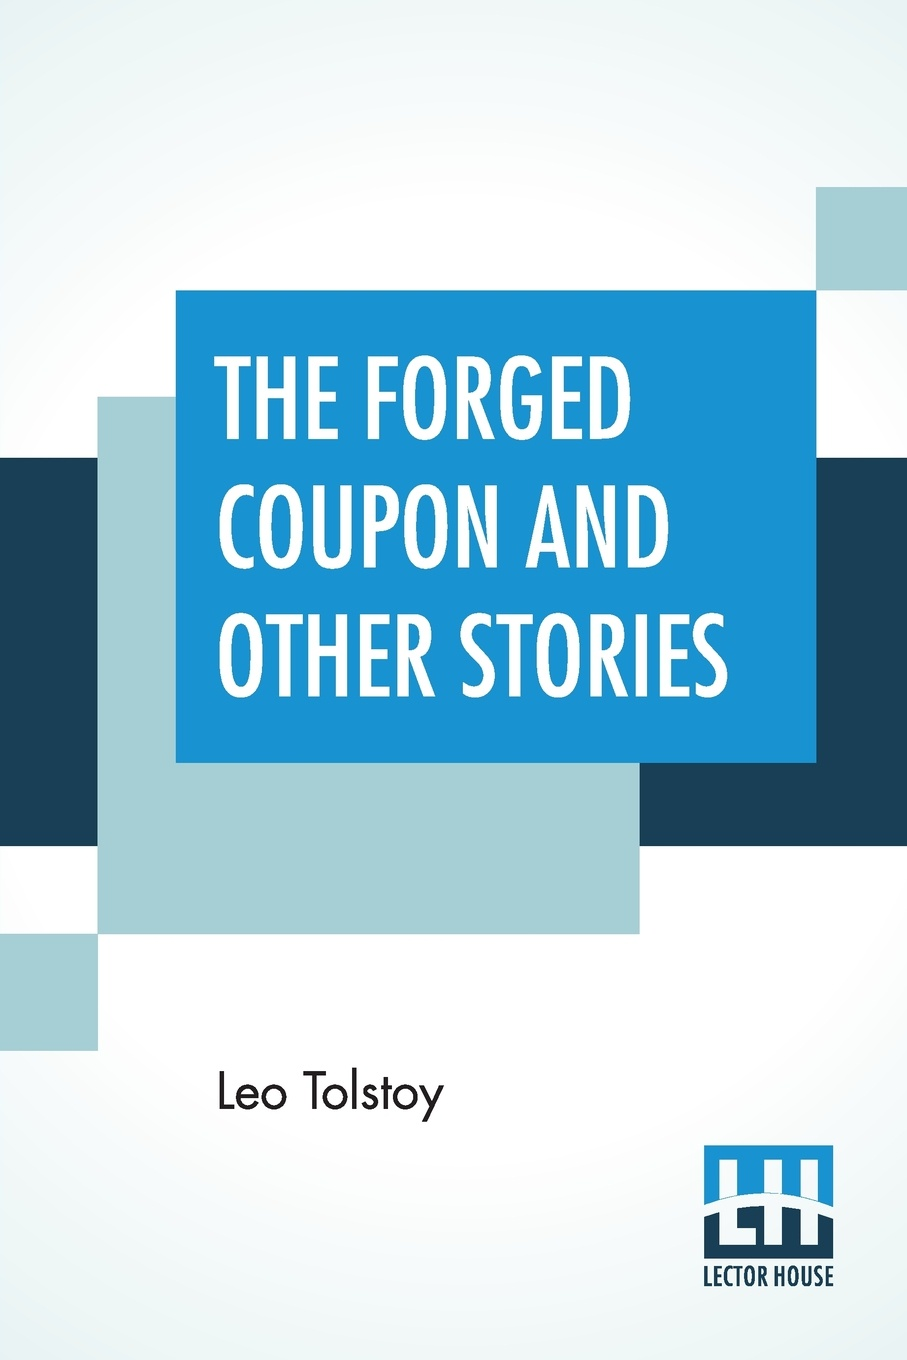 The Forged Coupon And Other Stories